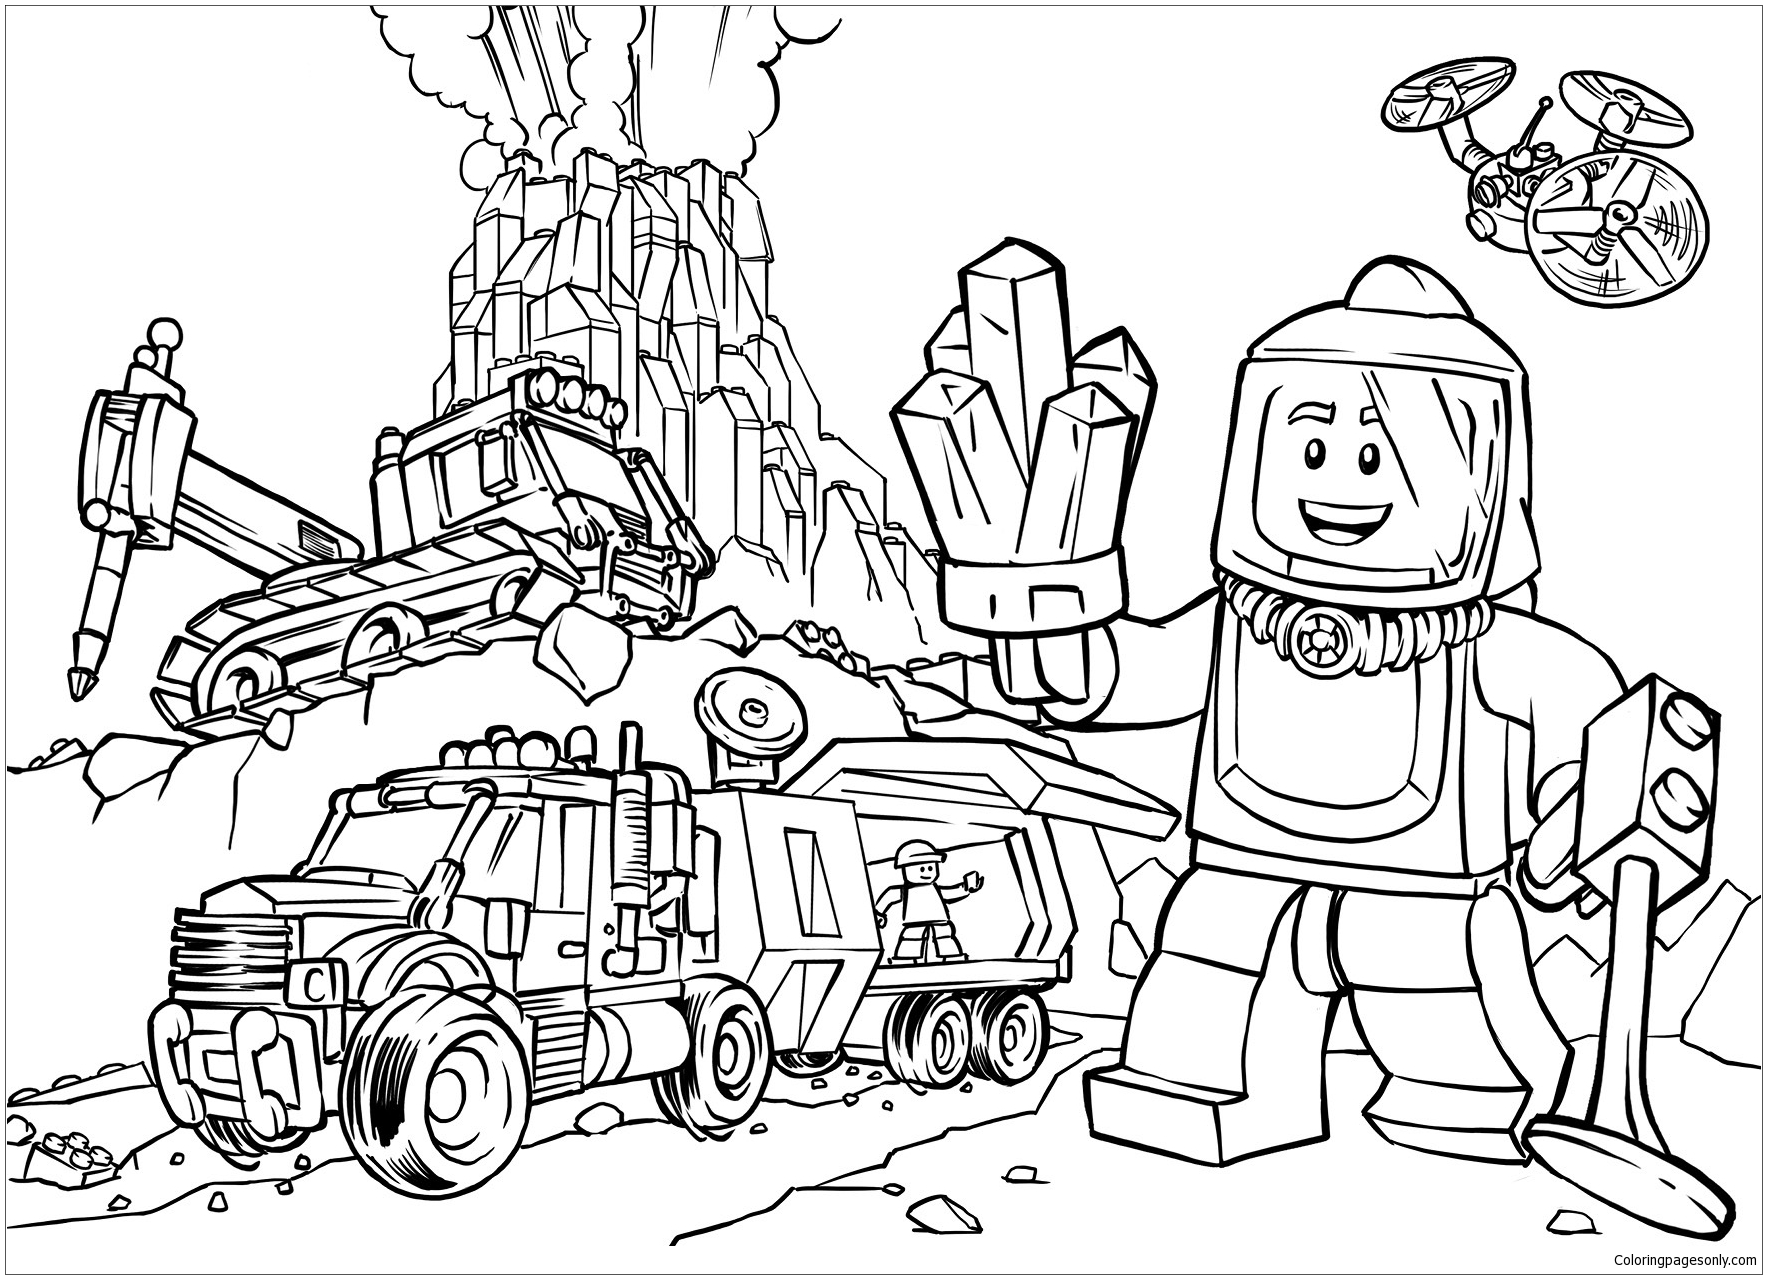 Volcano Explorers Lego Coloring Page Free Coloring Pages